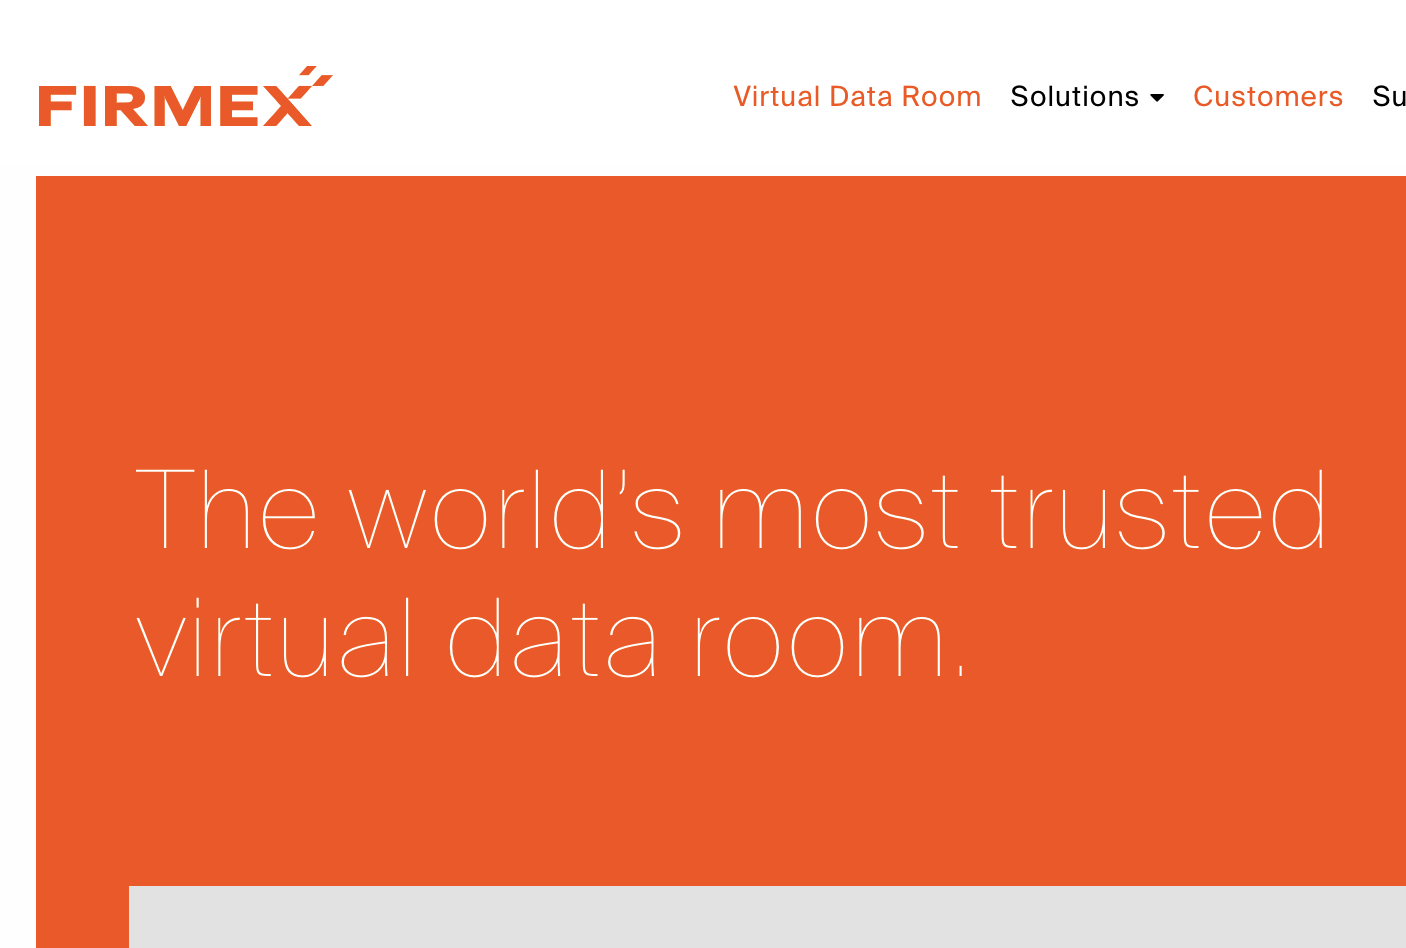 Virtual Data Room Technology Company Awarded Prestigious Customer